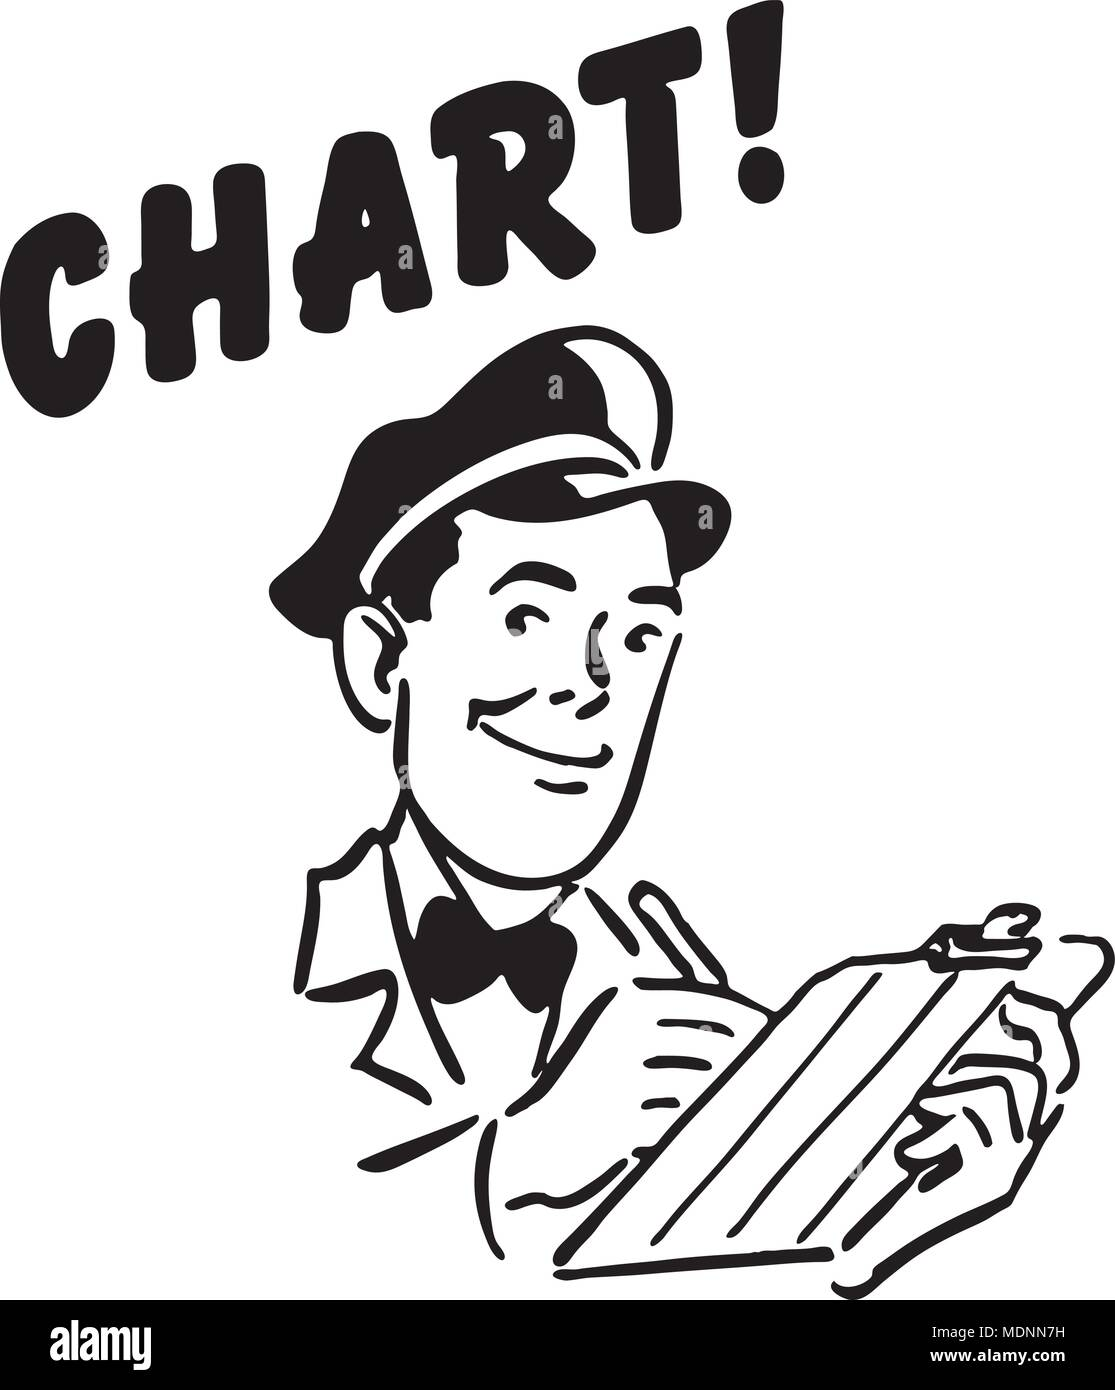 Chart - Retro Clipart Illustration - Stock Image